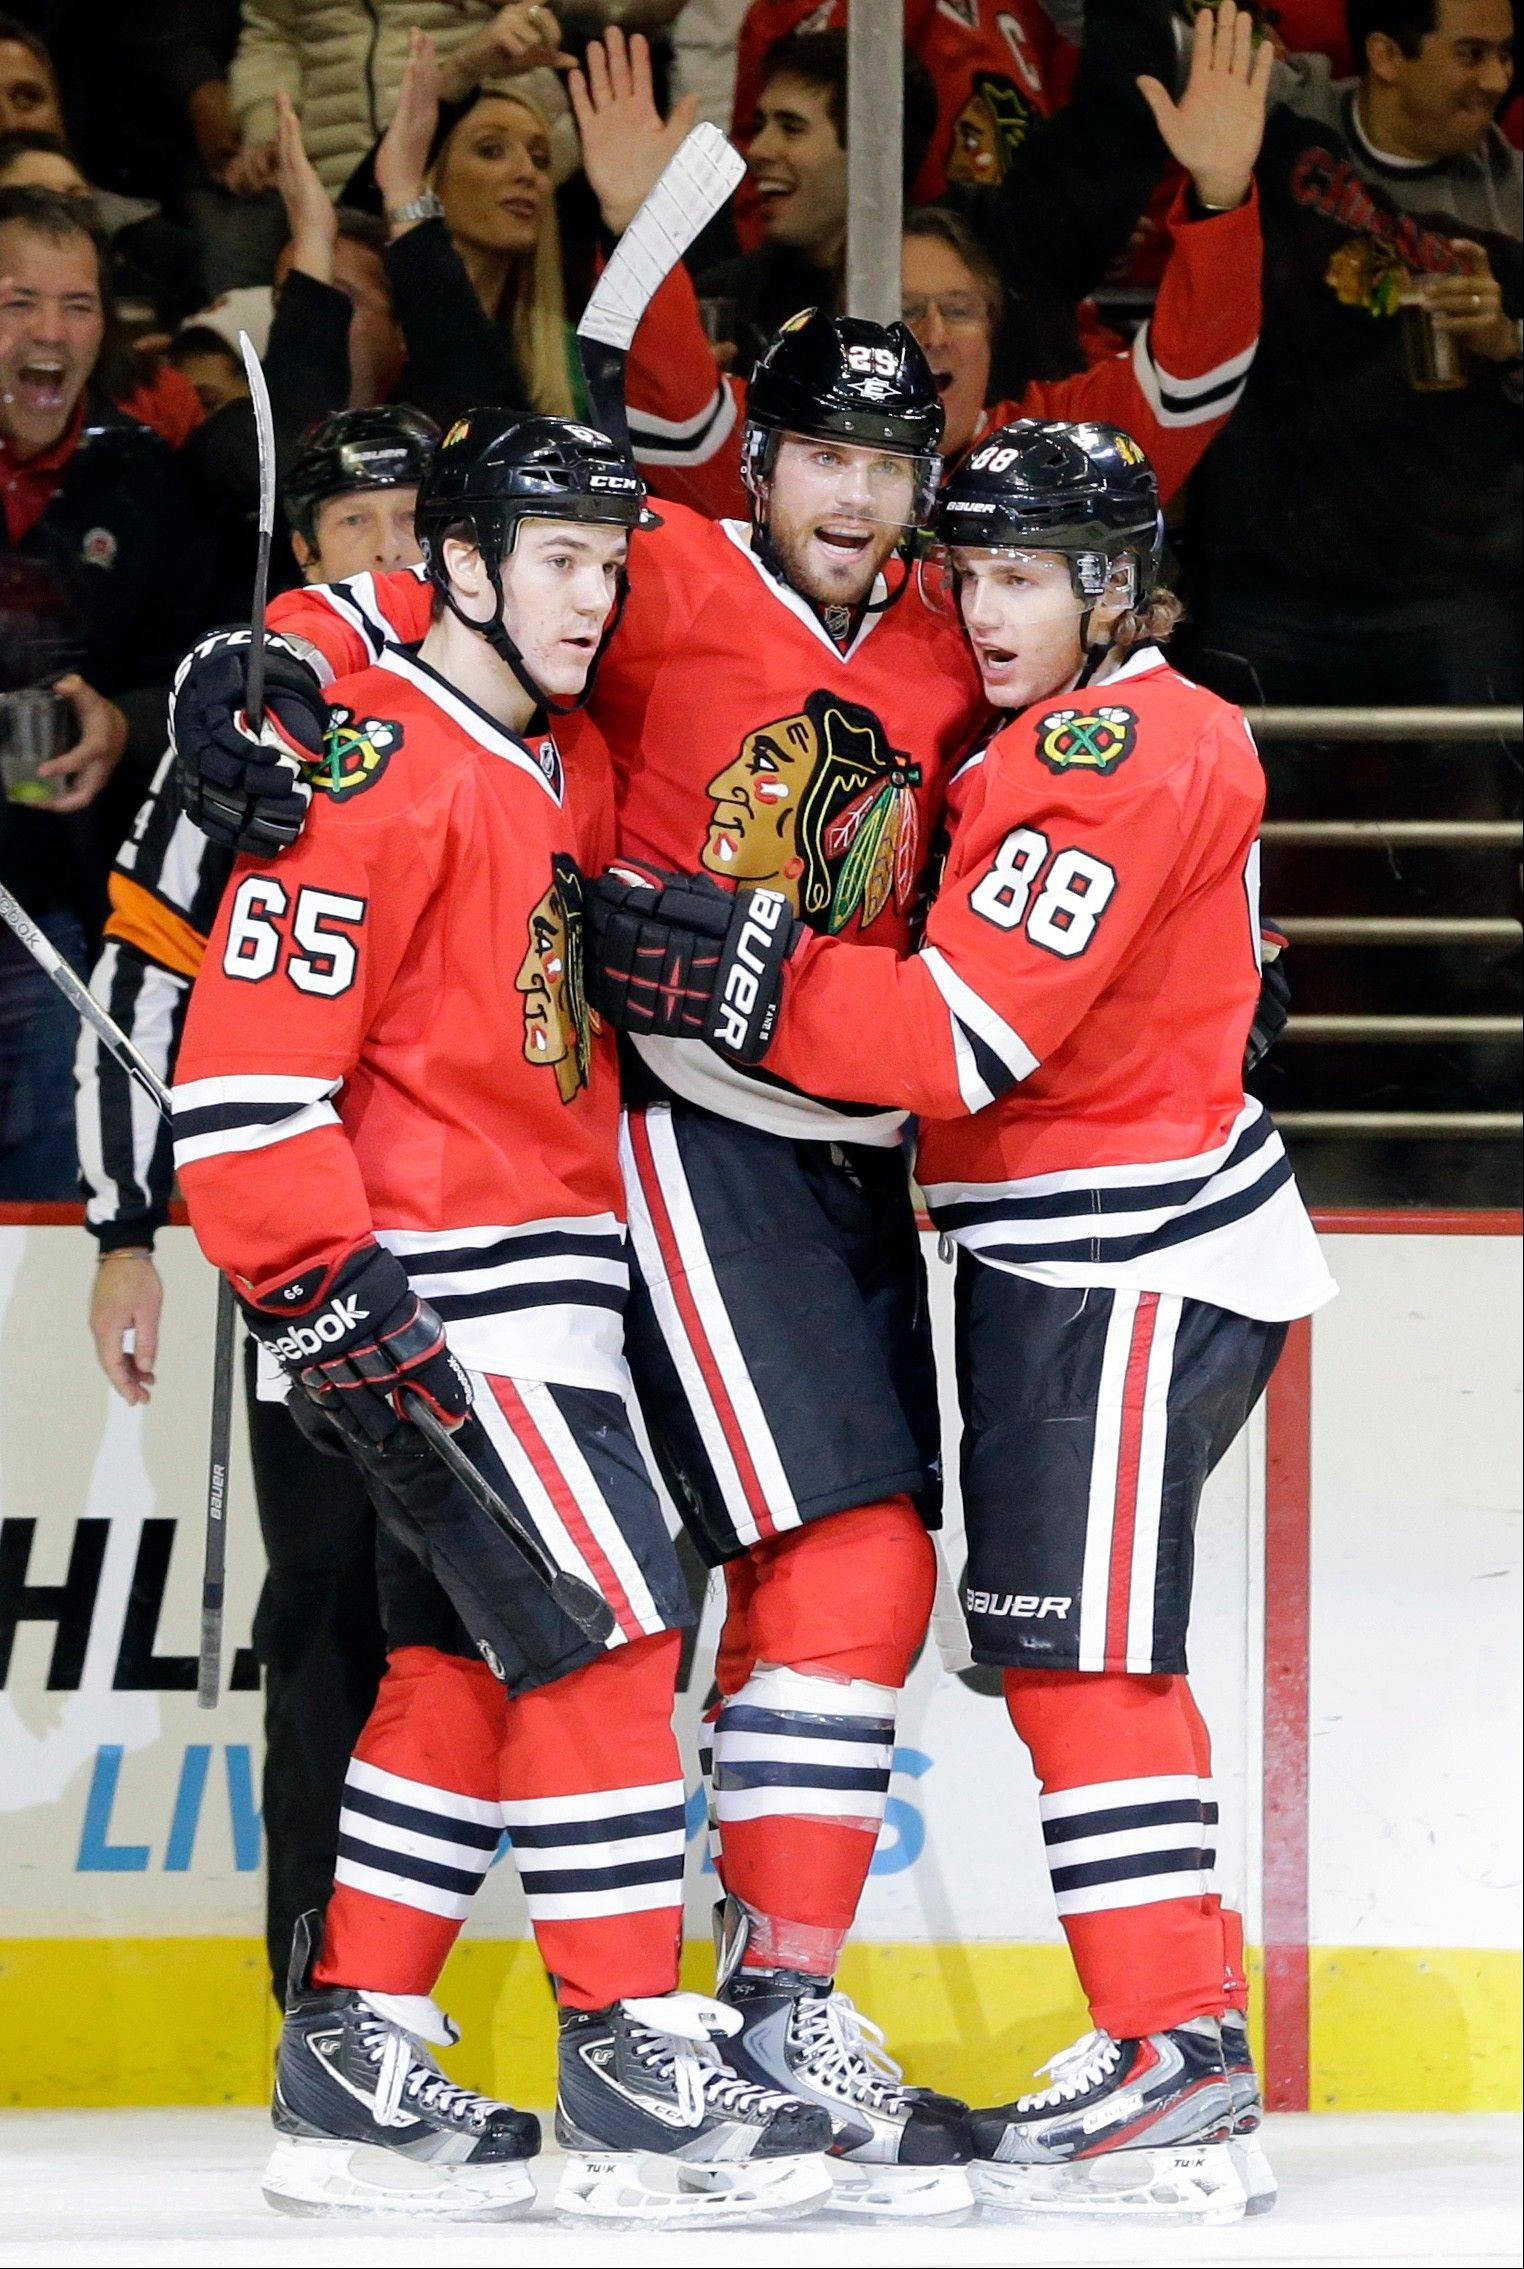 Viktor Stalberg, middle, celebrates with Andrew Shaw, left, and Patrick Kane after scoring a goal in the Blackhawks' record-breaking victory over San Jose.